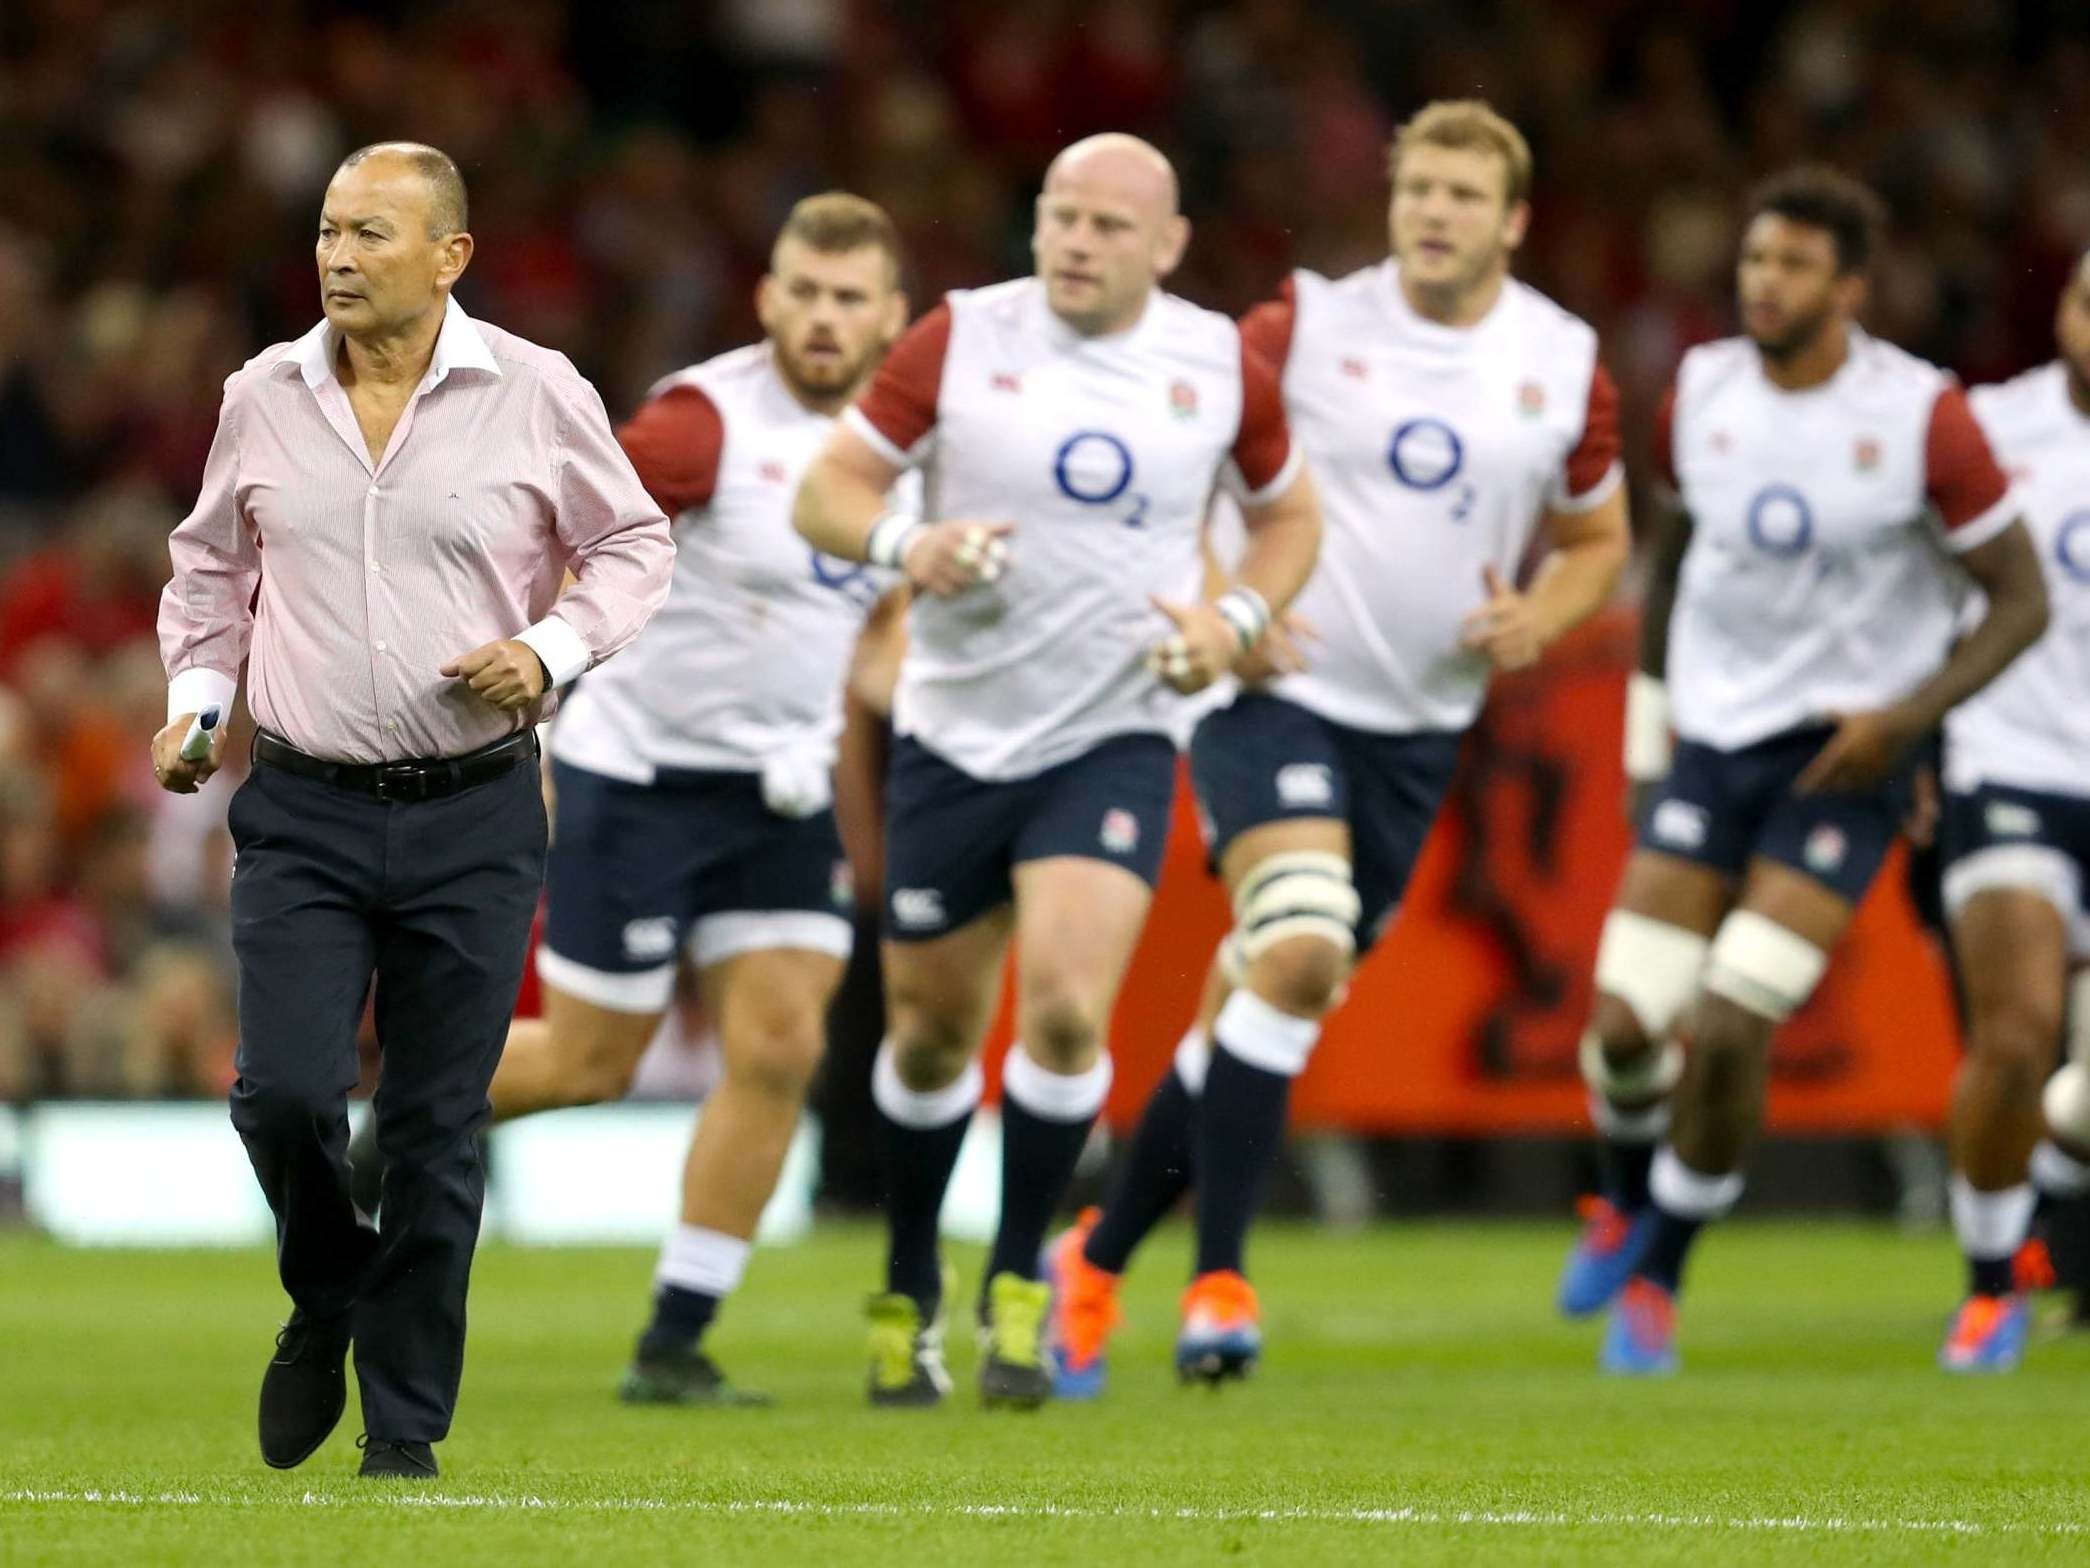 Rugby World Cup 2019: Eddie Jones holds back England's secret weapons but time to learn lessons is running out